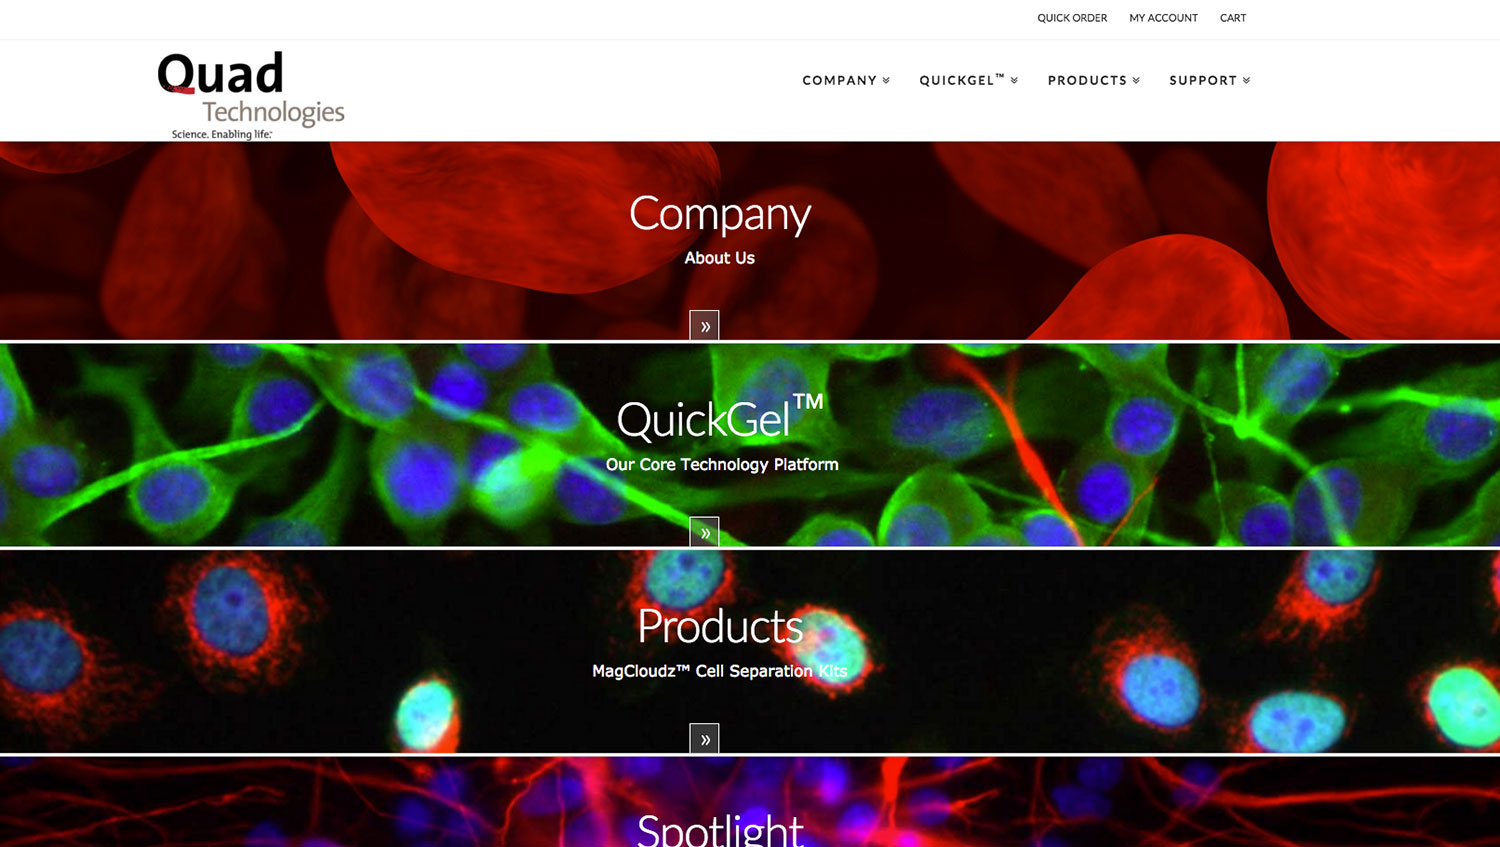 Quad Technologies Home Page